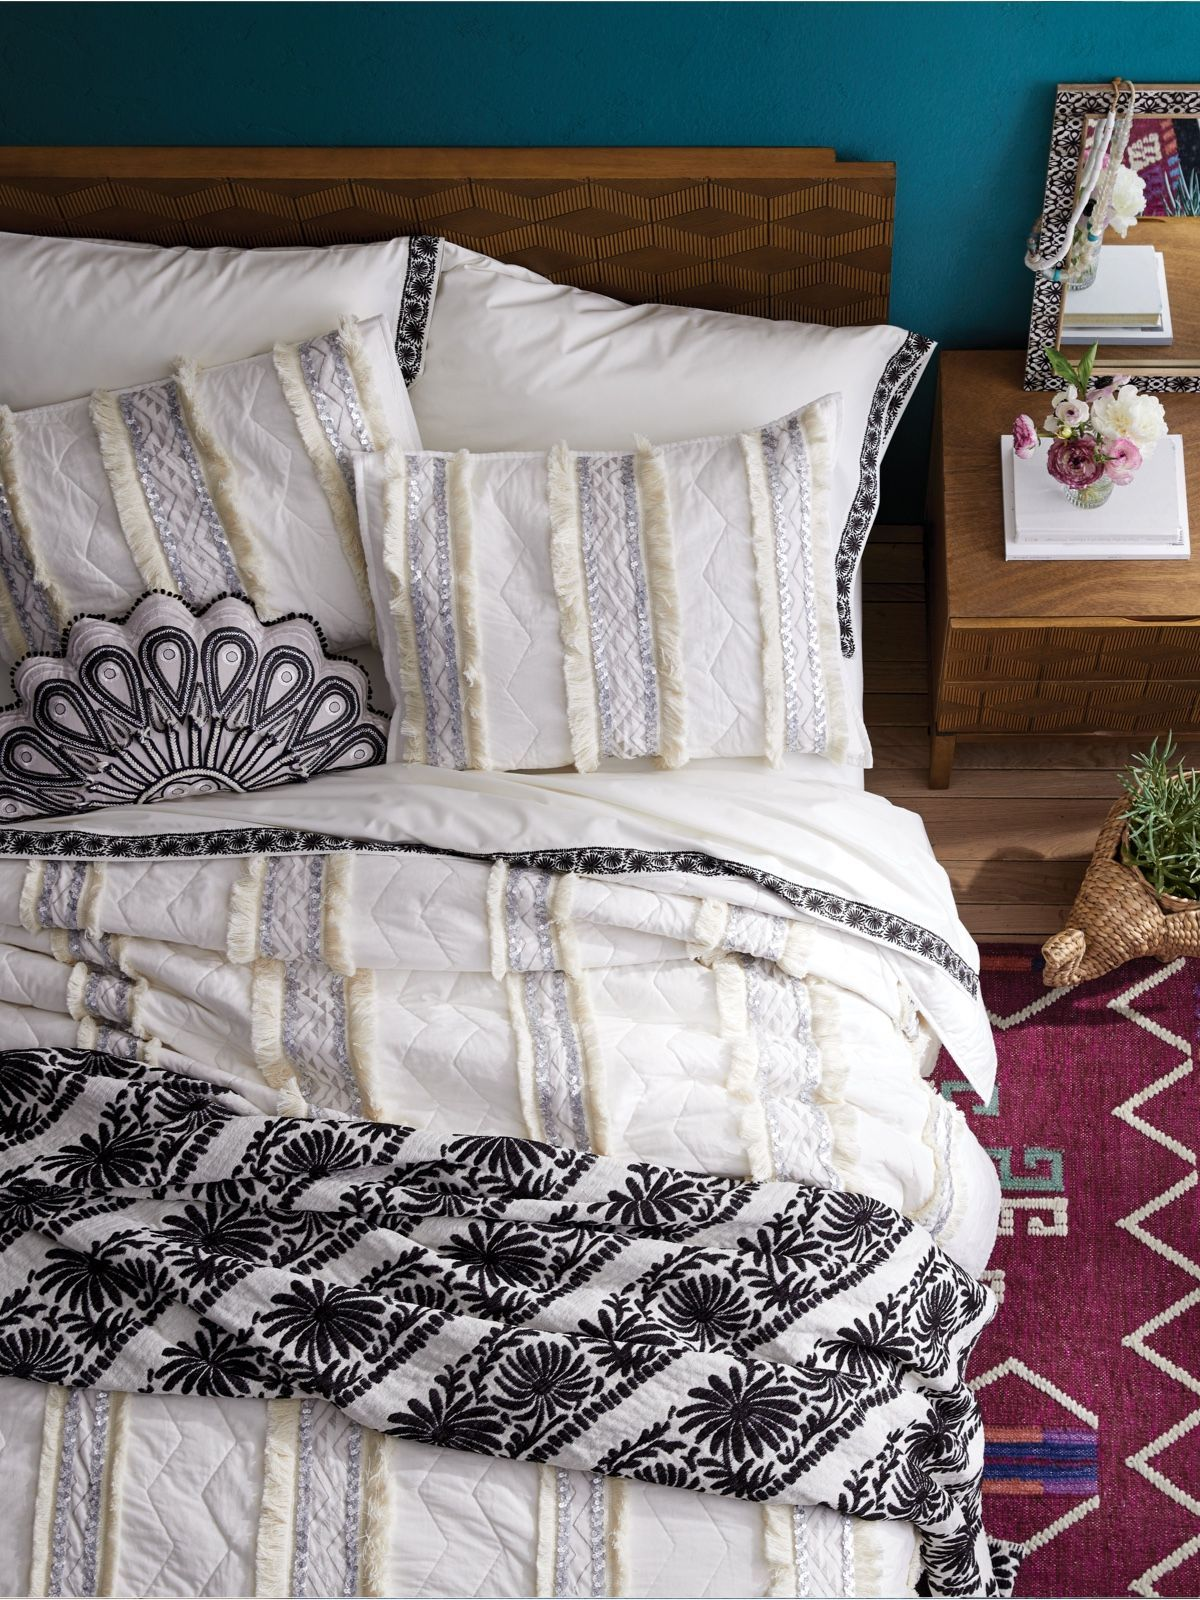 New Opalhouse Brand By Target Affordable Home Decor This Bedroom Is Perfect Ad Embellished Bedding Target Home Decor Eclectic Bedding